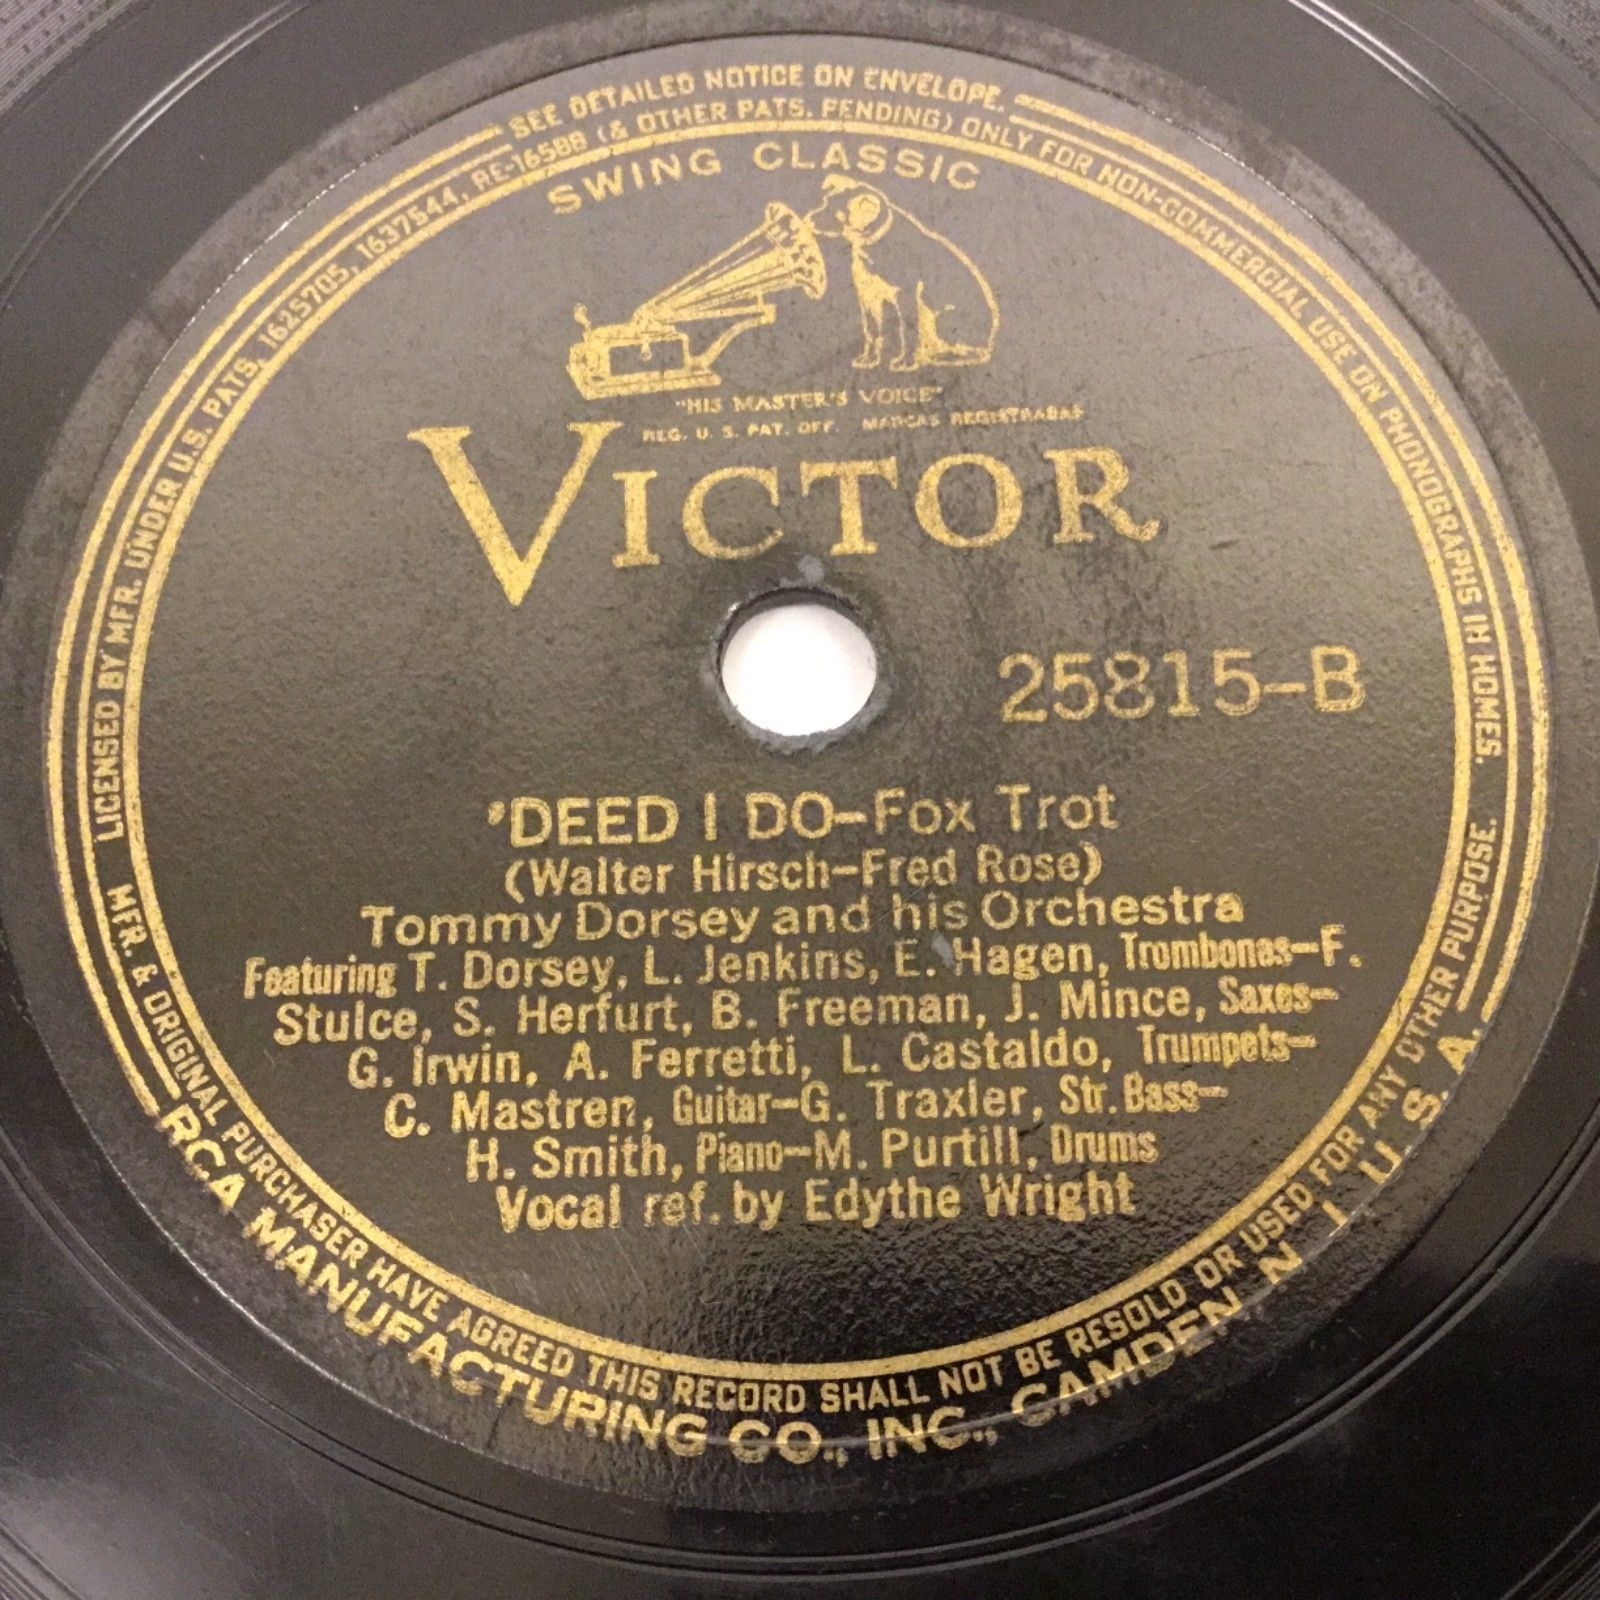 1938 TOMMY DORSEY 78 RPM RCA VICTOR RECORD 25815 DEED I DO